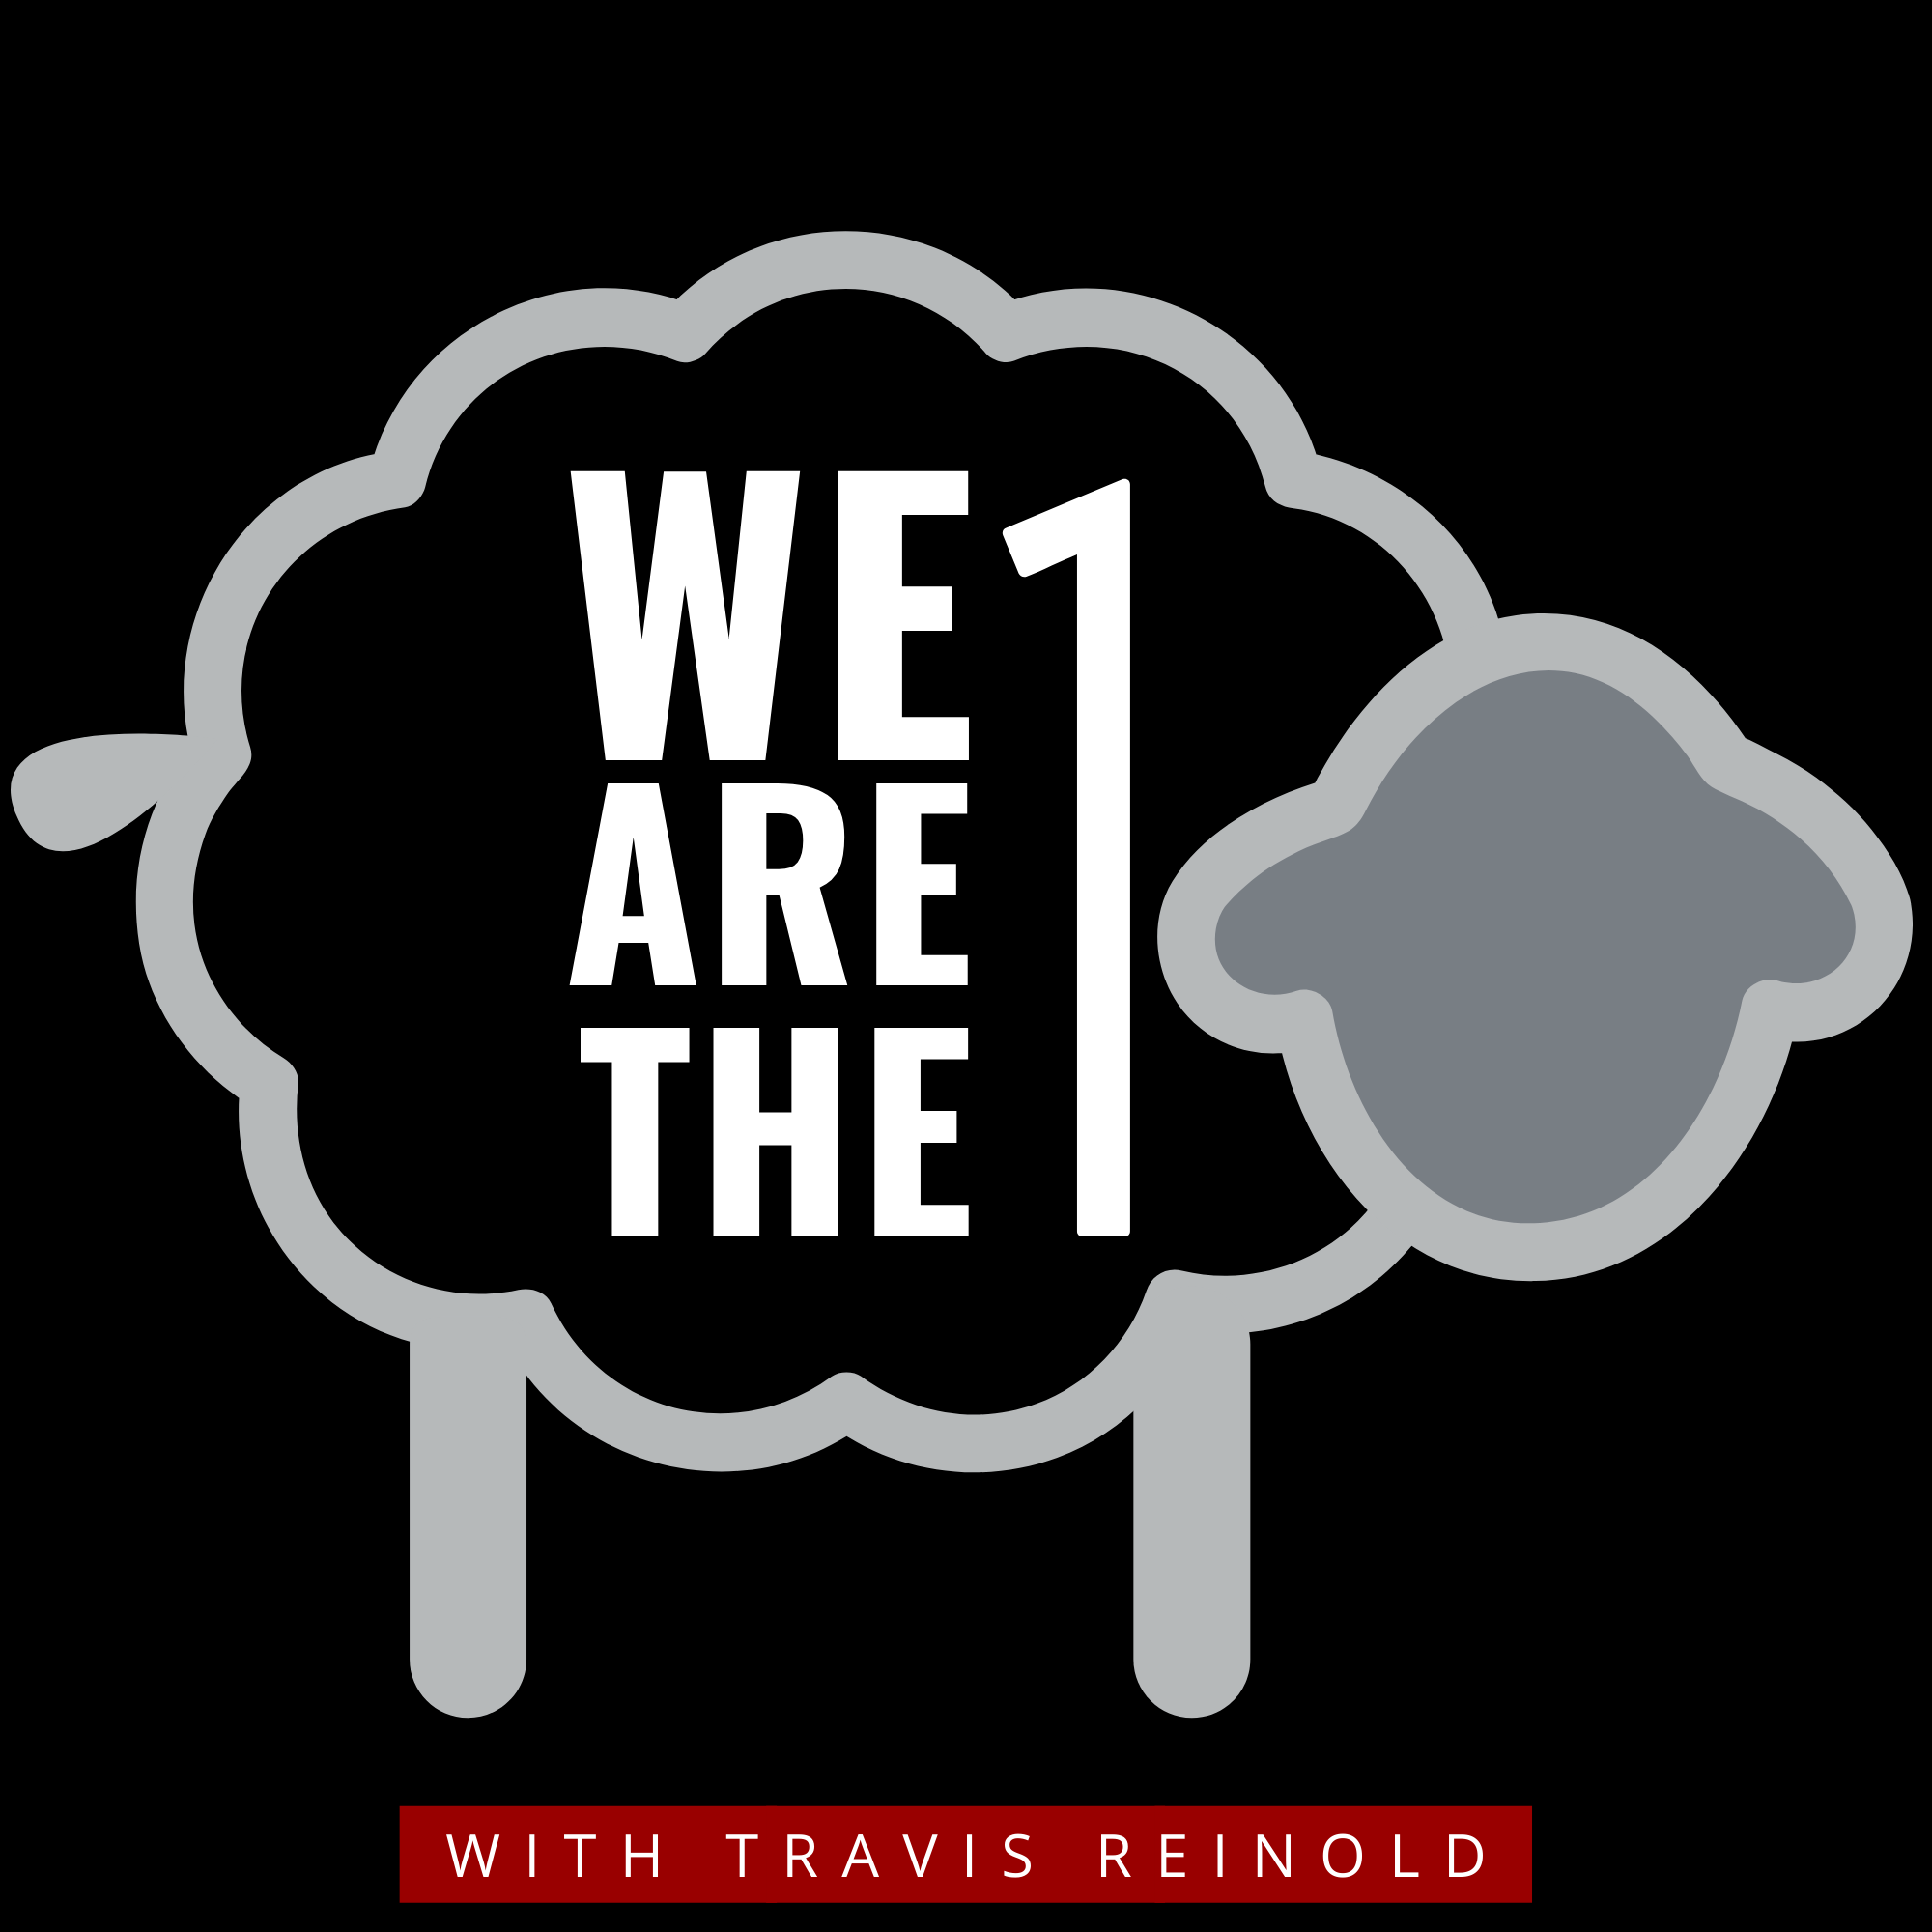 We are the 1: Bible Studies and Spiritual Encouragement with Travis Reinold show image